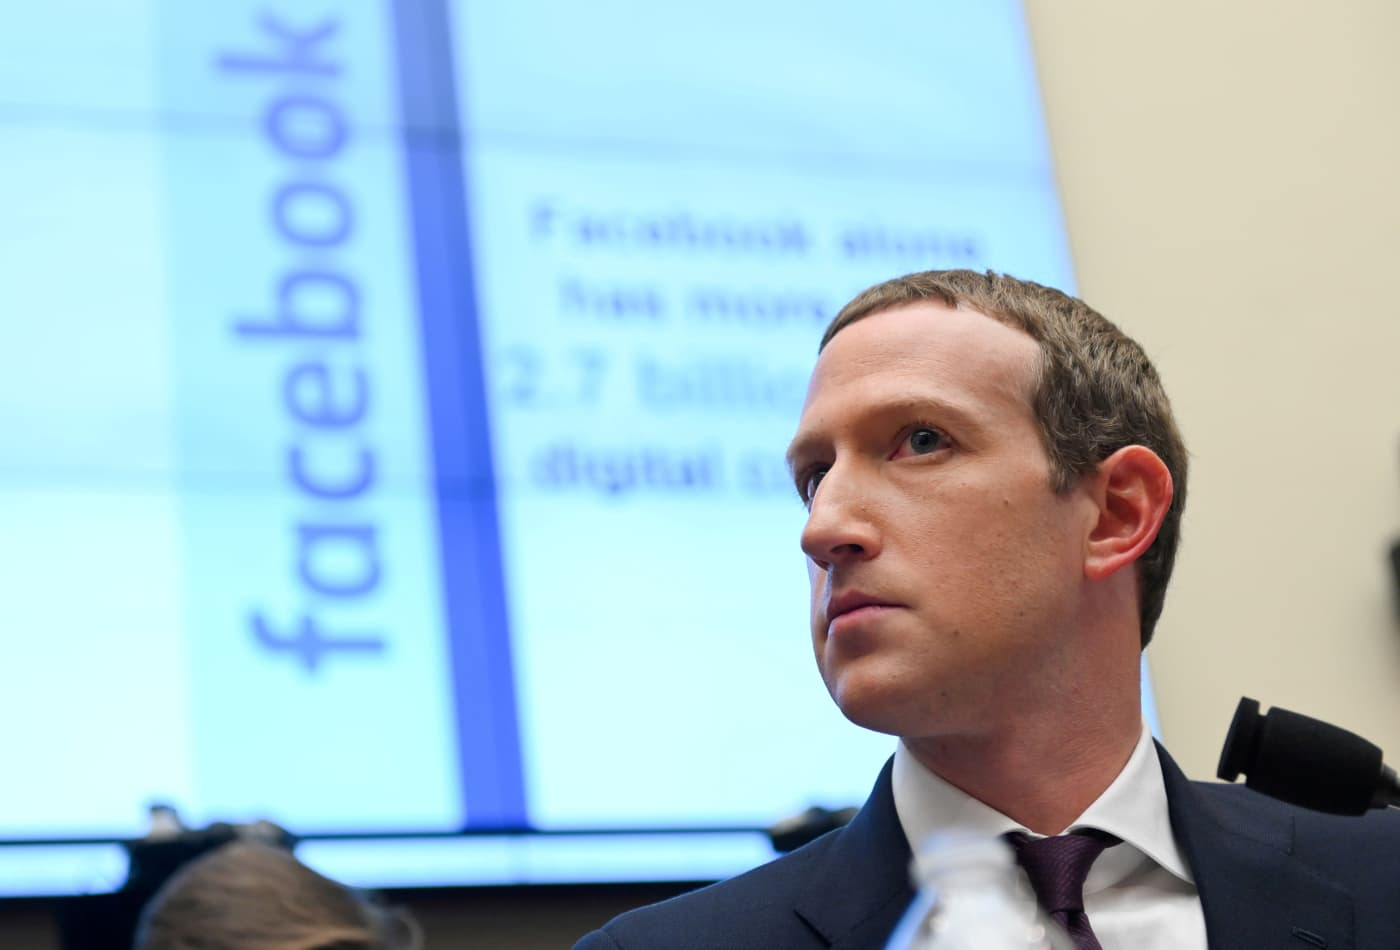 Facebook blocked charity and state health pages in Australia news ban